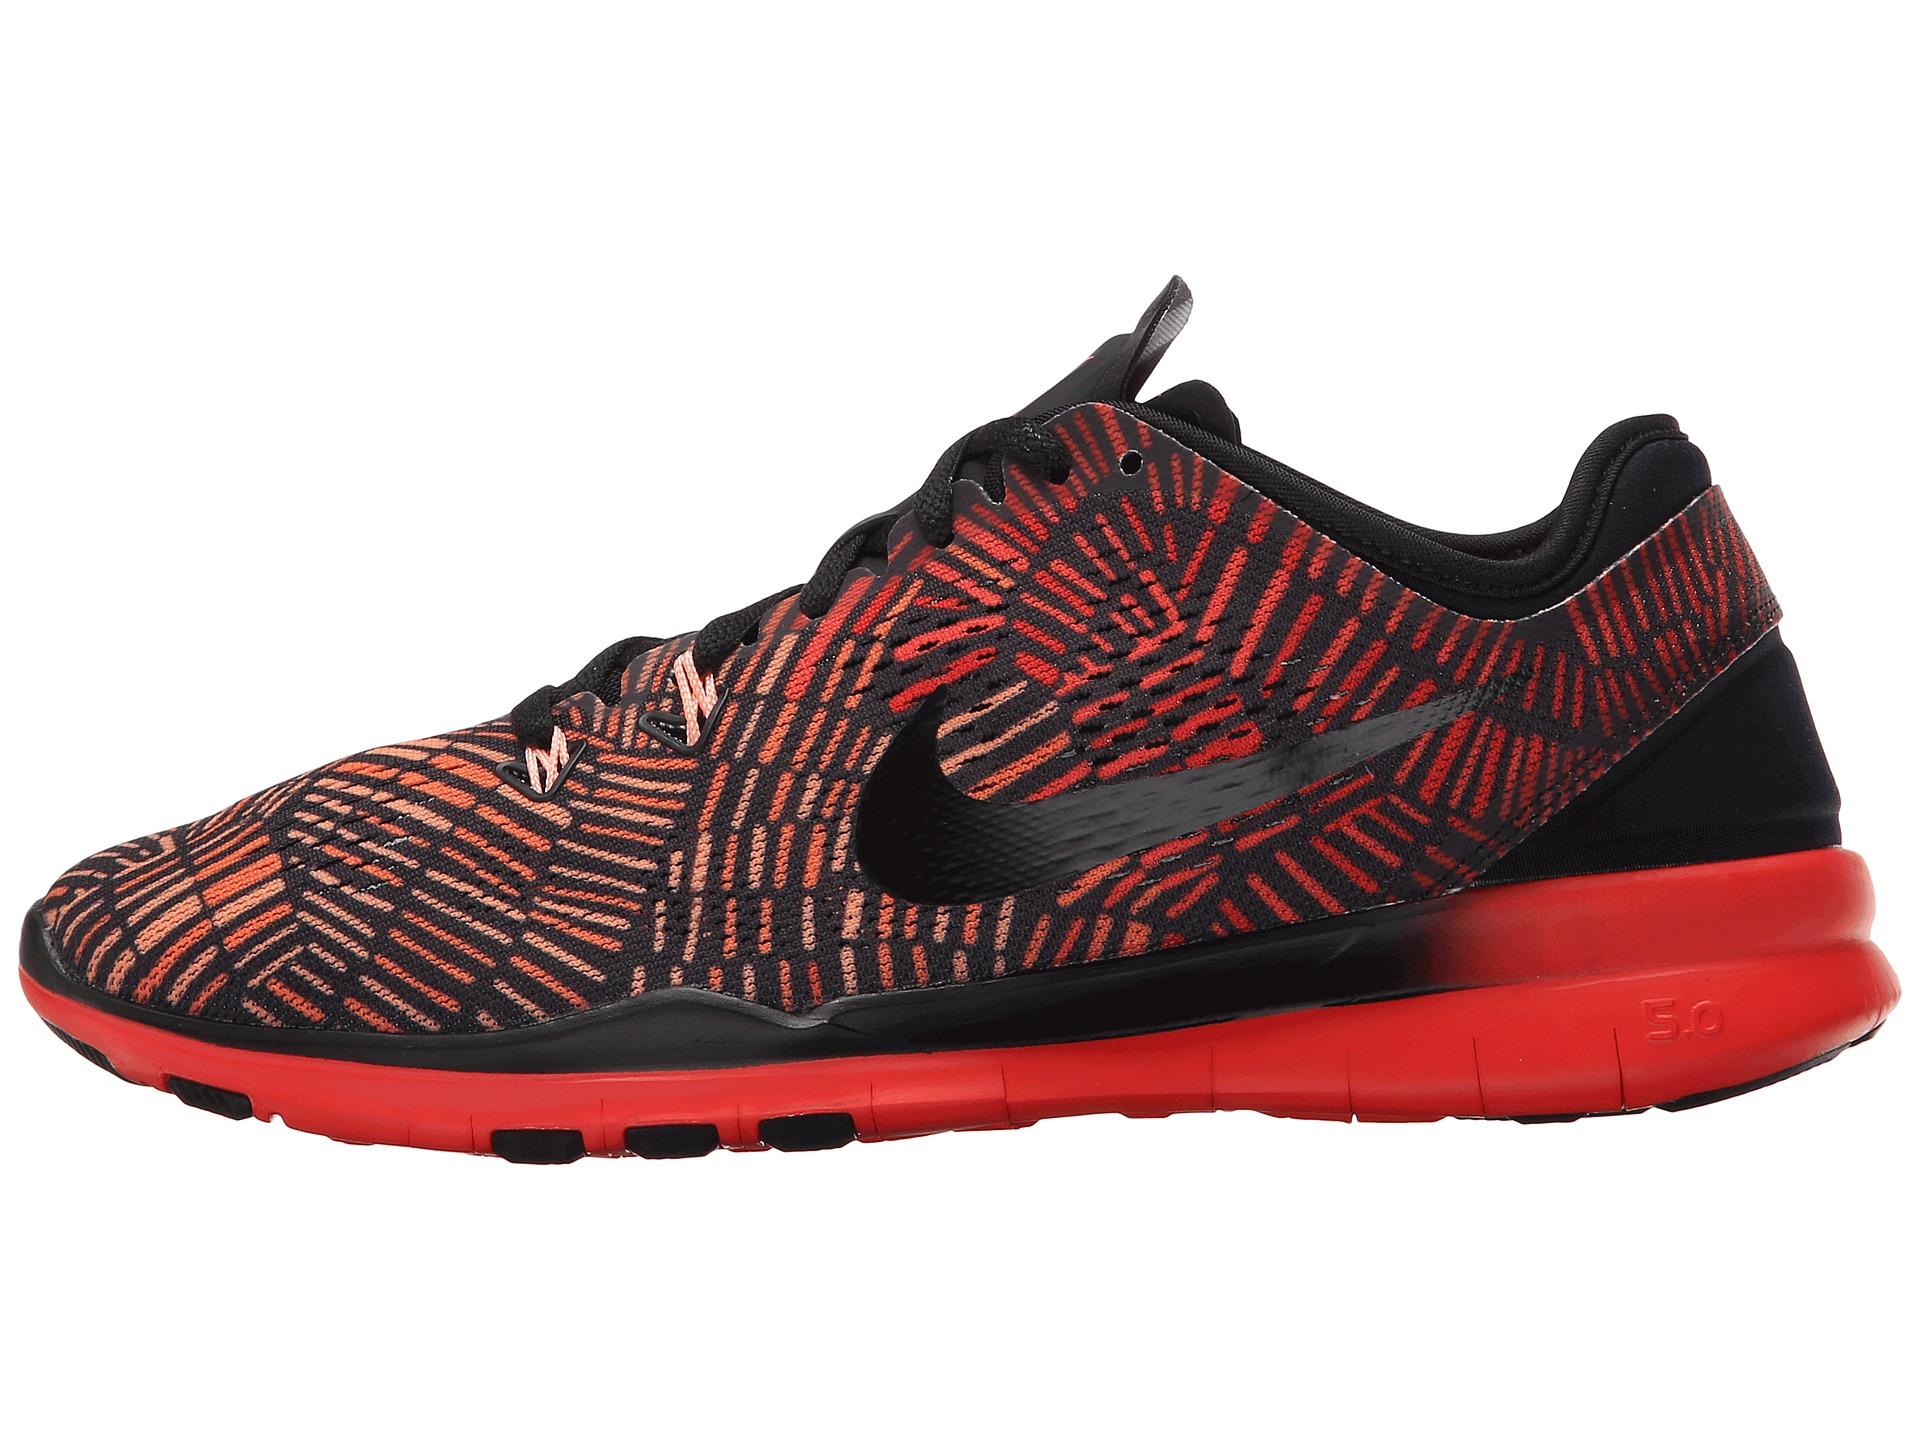 a0da7f8f5ff4c Lyst - Nike Free 5.0 Tr Fit 5 Prt in Red